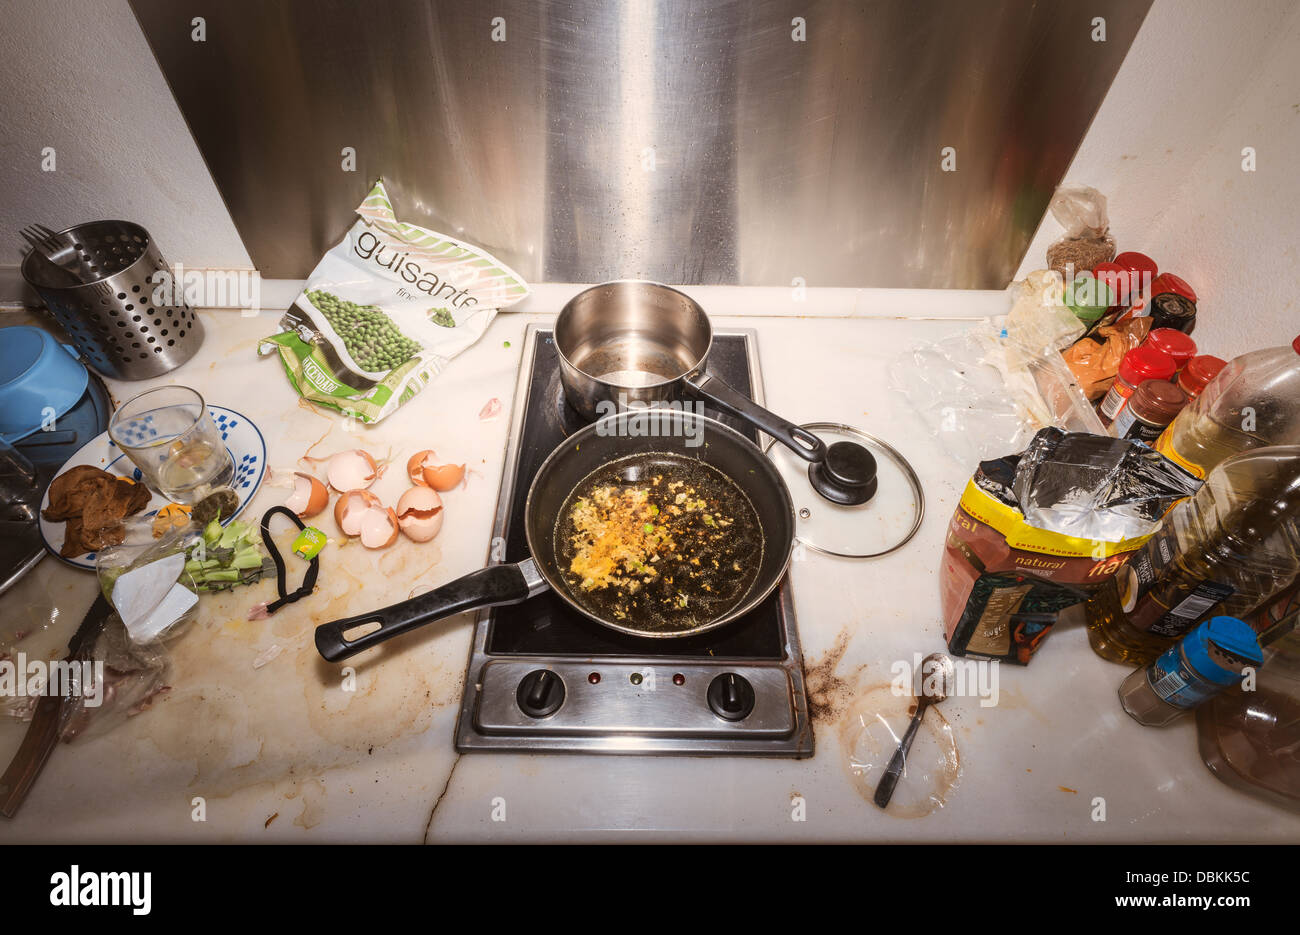 Dirty kitchen Stock Photo: 58824456 - Alamy on unhealthy kitchen, unkept kitchen, funny back in the kitchen, restaurant kitchen, wet kitchen, ugly kitchen, used kitchen, artisan kitchen, unsanitary kitchen,